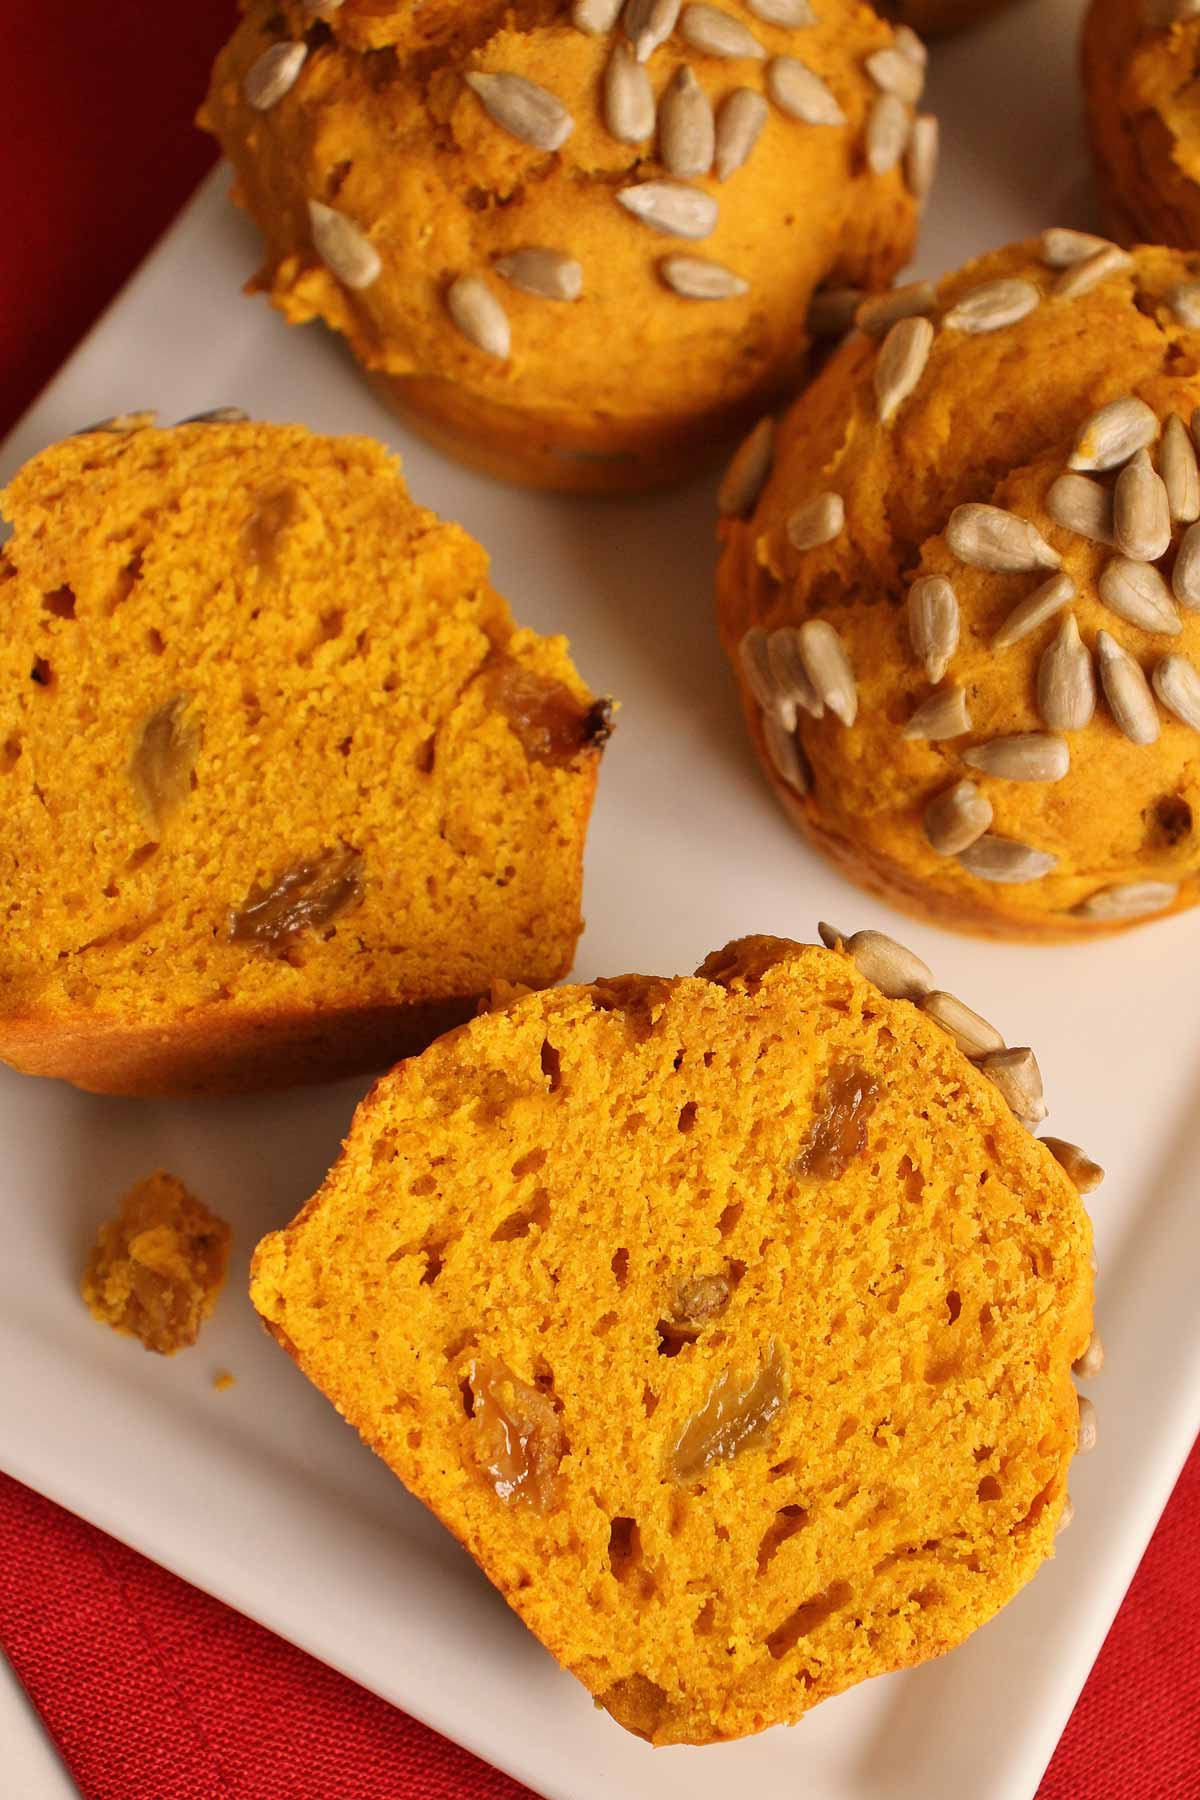 Pumpkin muffins on a white plate with one cut in half to show golden raisins inside.